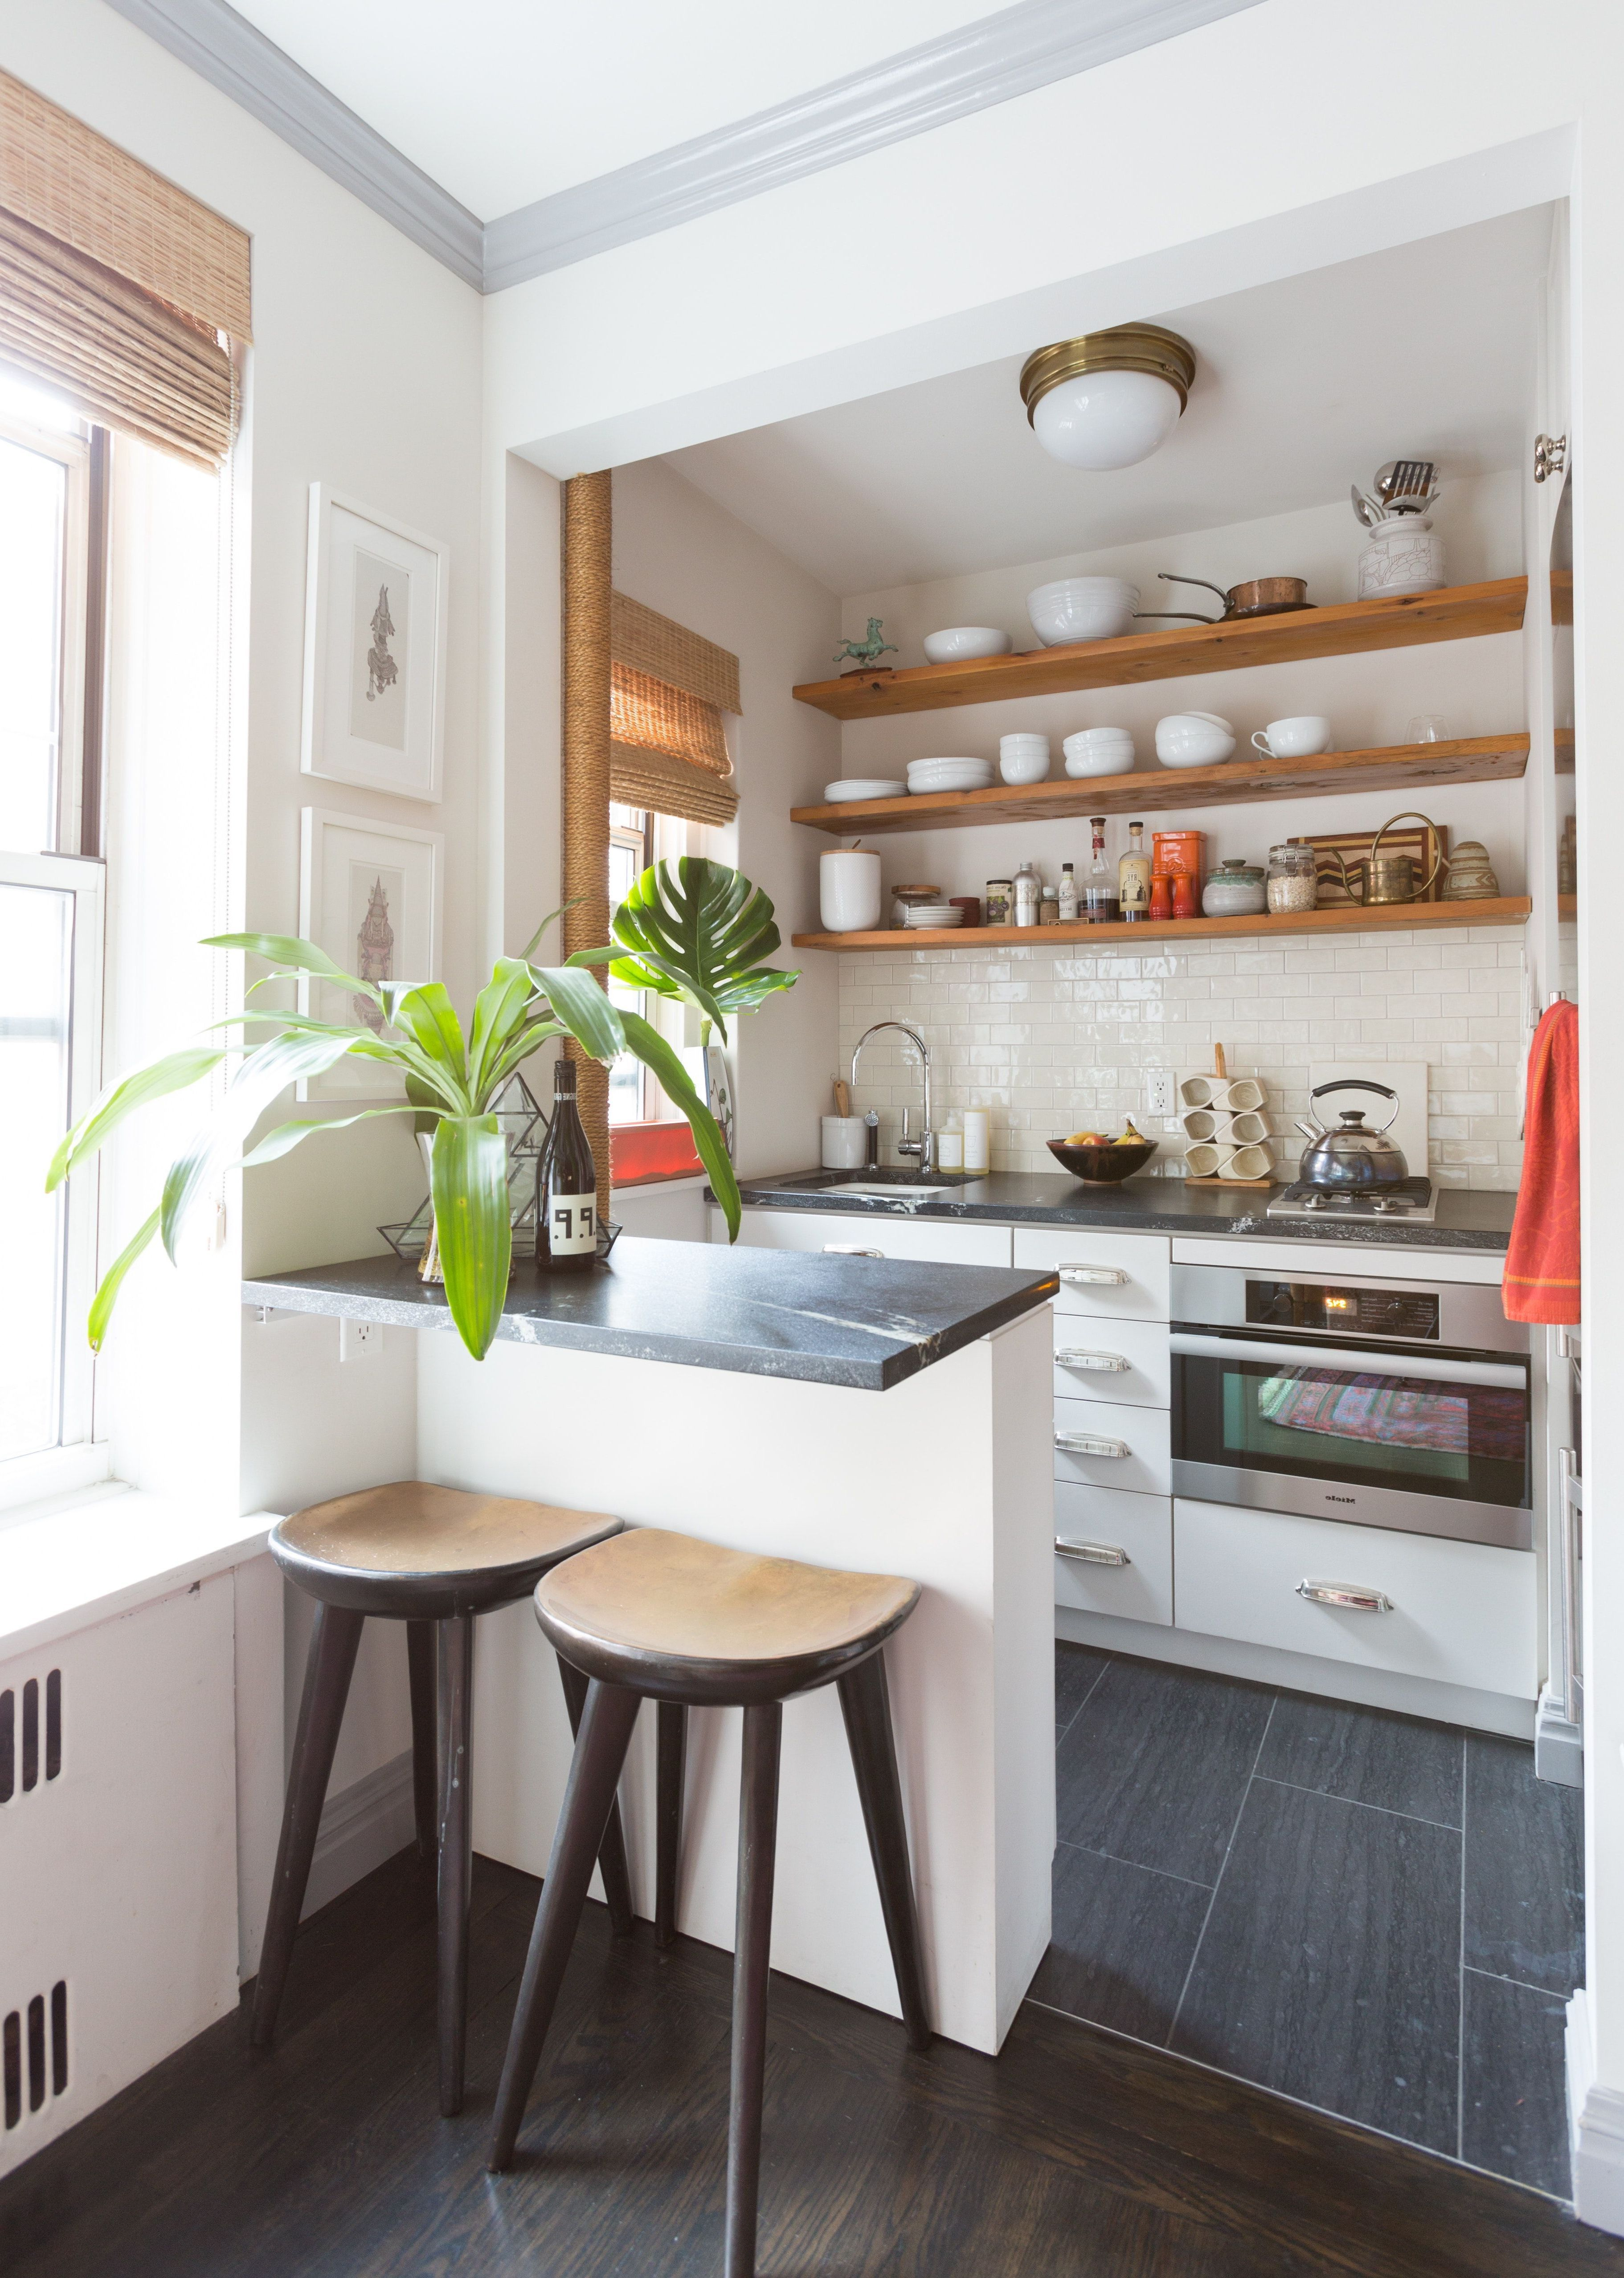 Design And Layout Of Square Kitchen Decor Around The World Kitchen Design Small Cosy Kitchen Small Apartment Kitchen